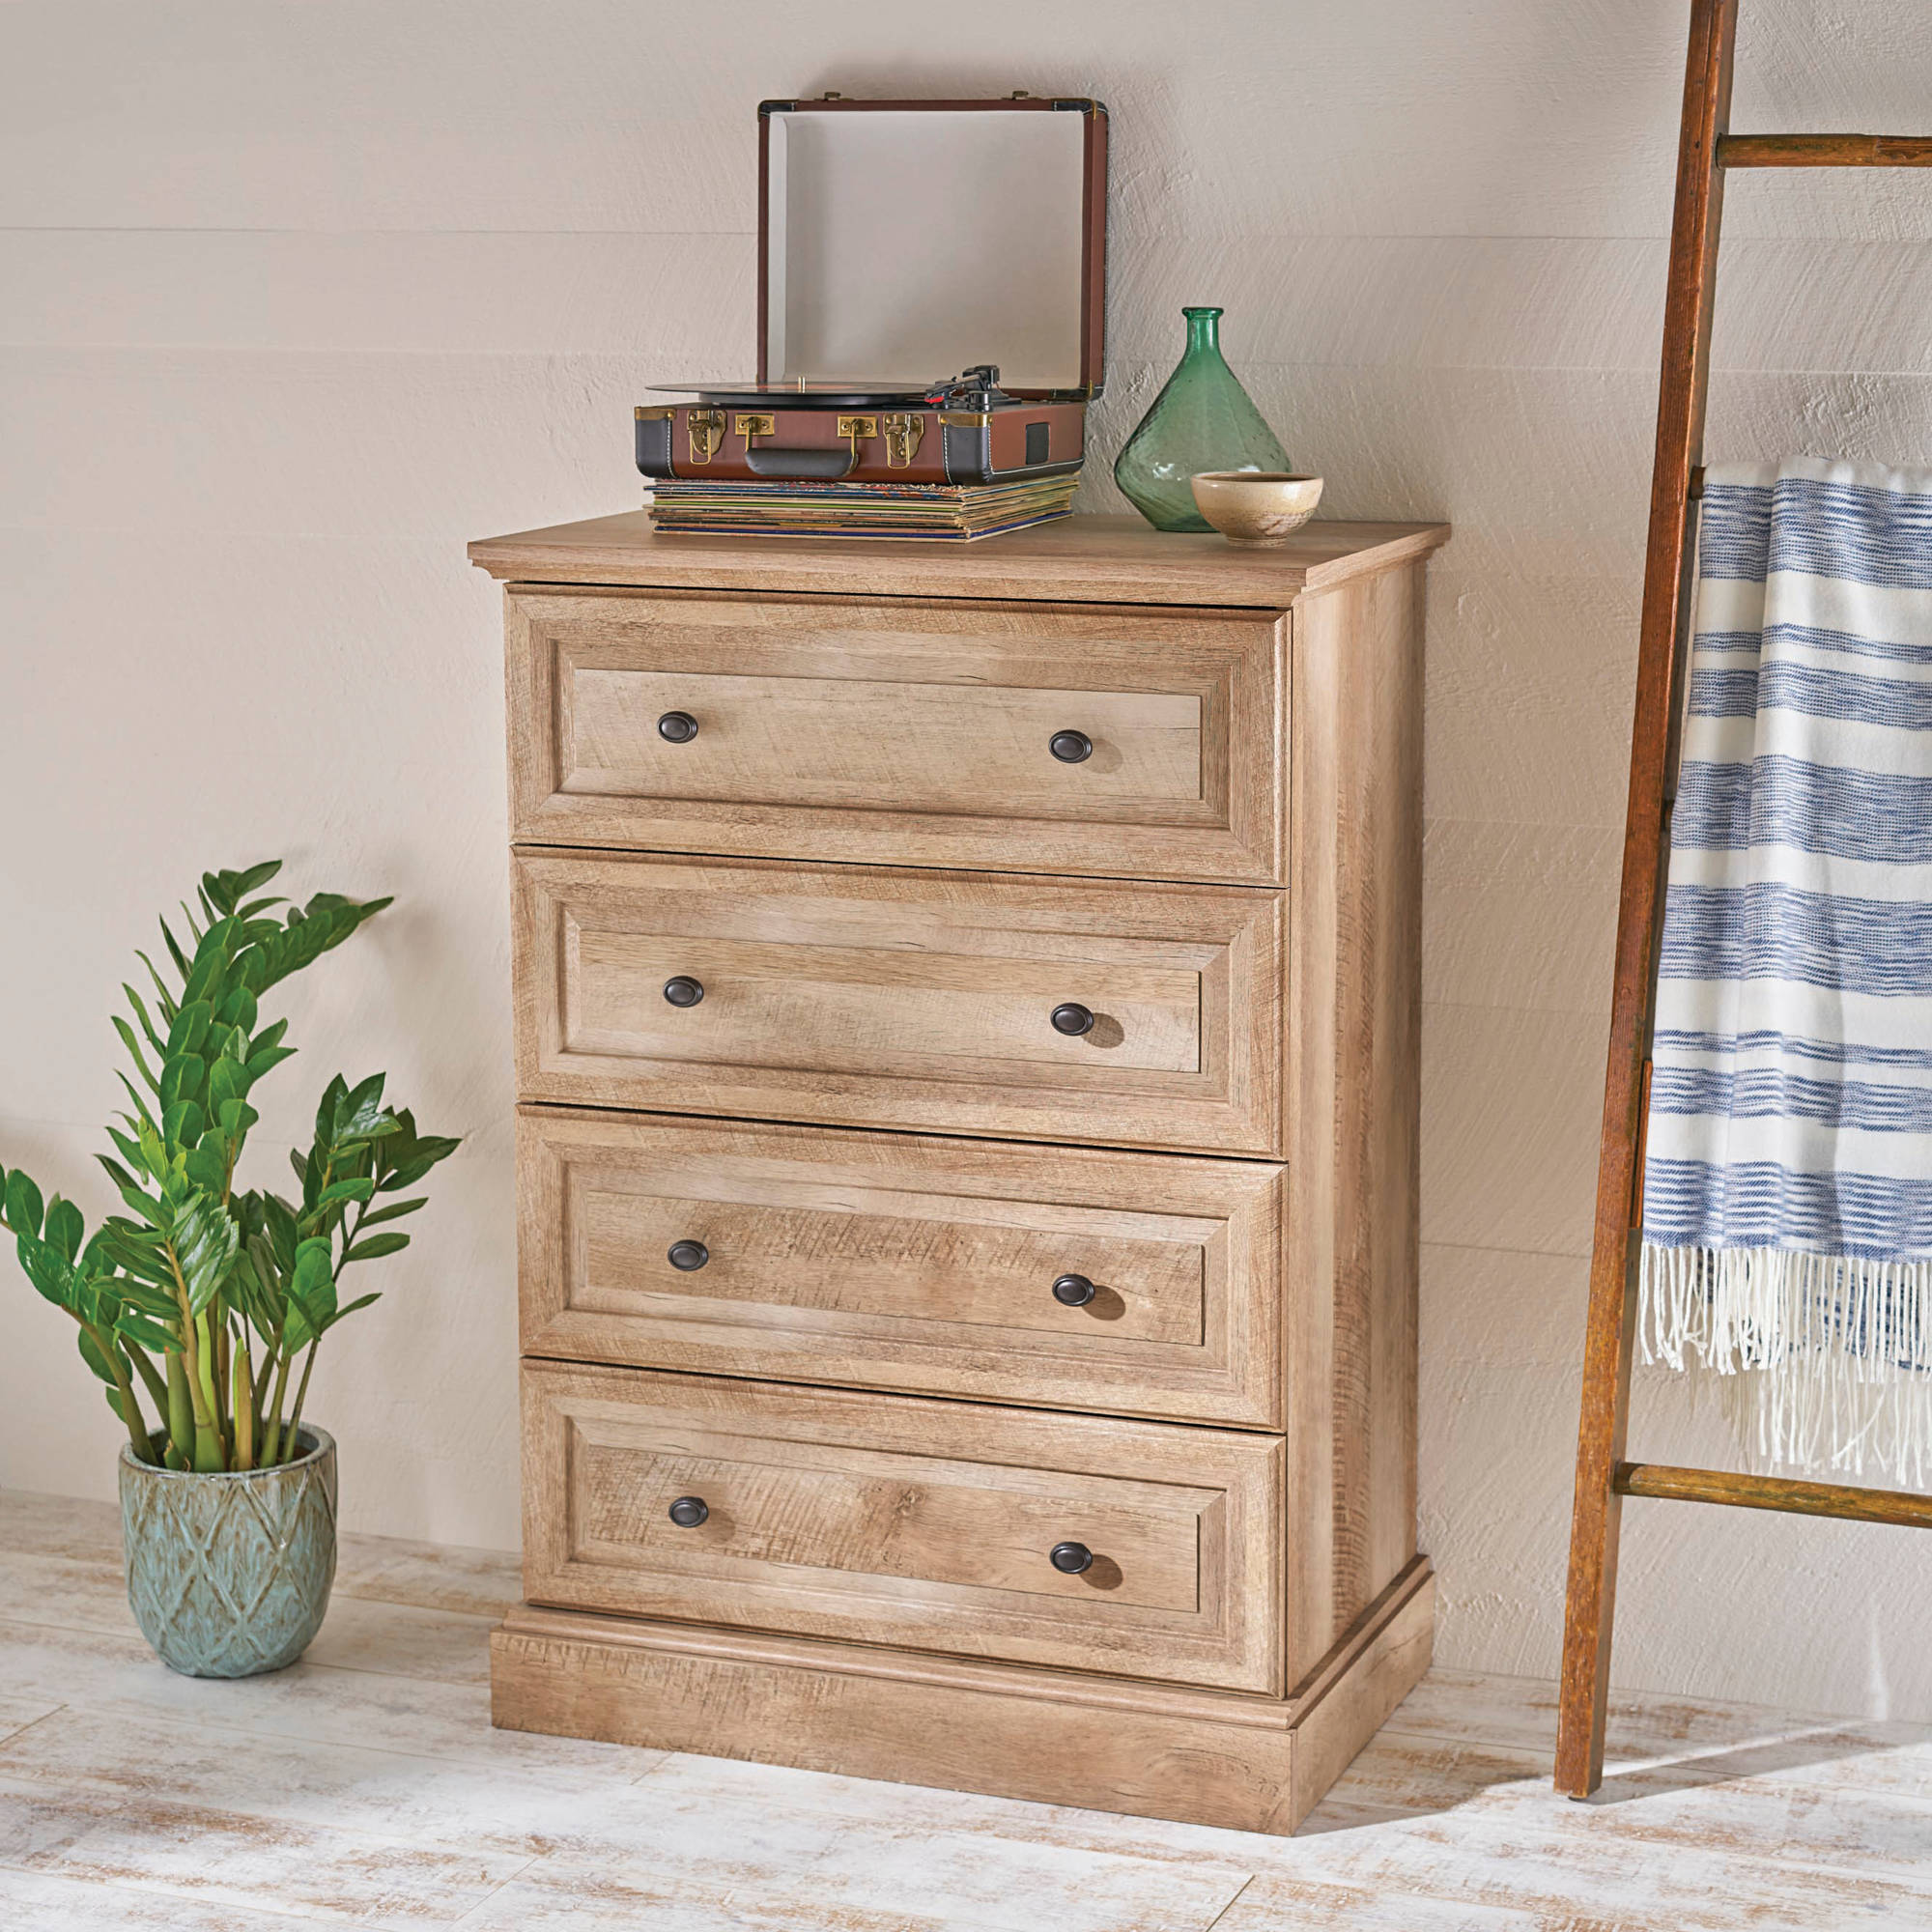 image chest white bedroom upc furniture product drawer cabinet dresser four clothes for drawers prod linen belmont storage